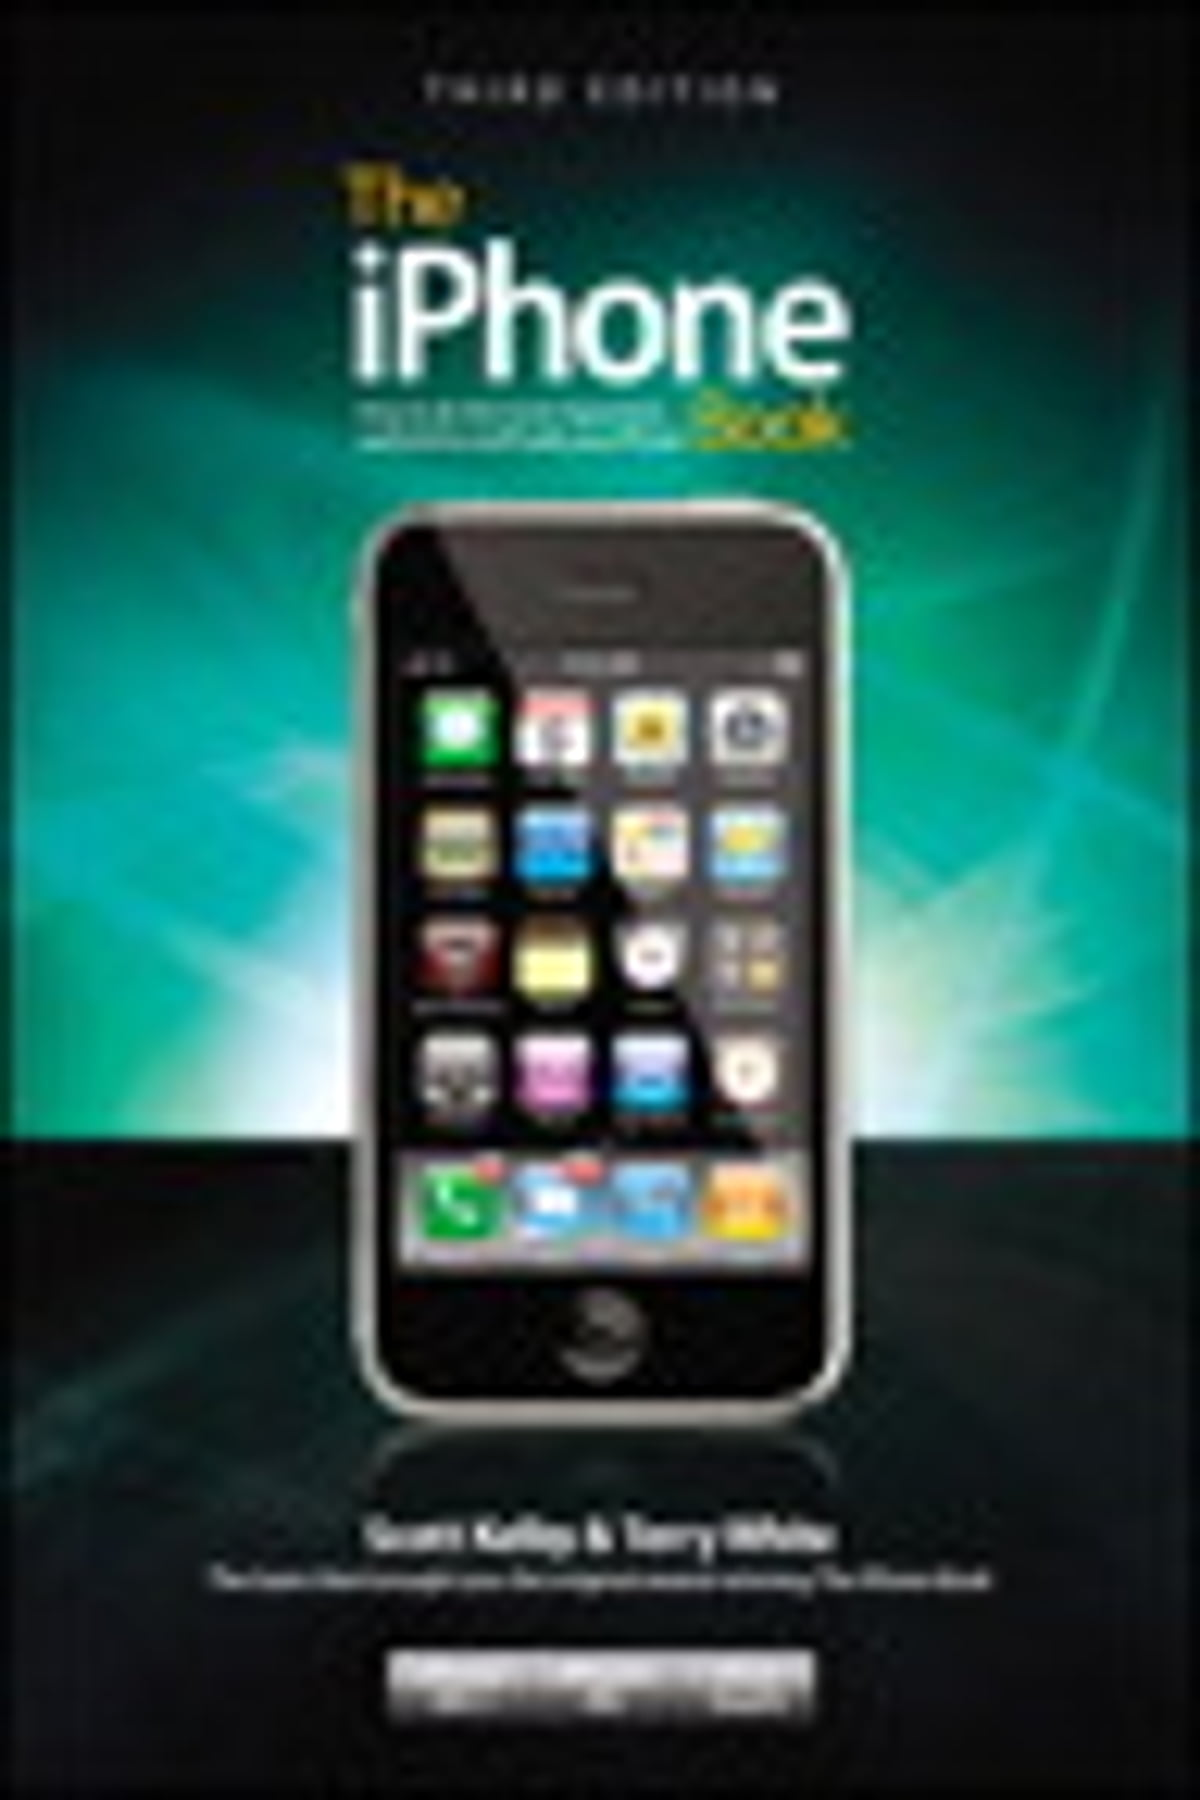 Iphone 3gs The Iphone Book Third Edition Covers Iphone 3gs Iphone 3g And Ipod Touch Ebook By Scott Kelby Rakuten Kobo